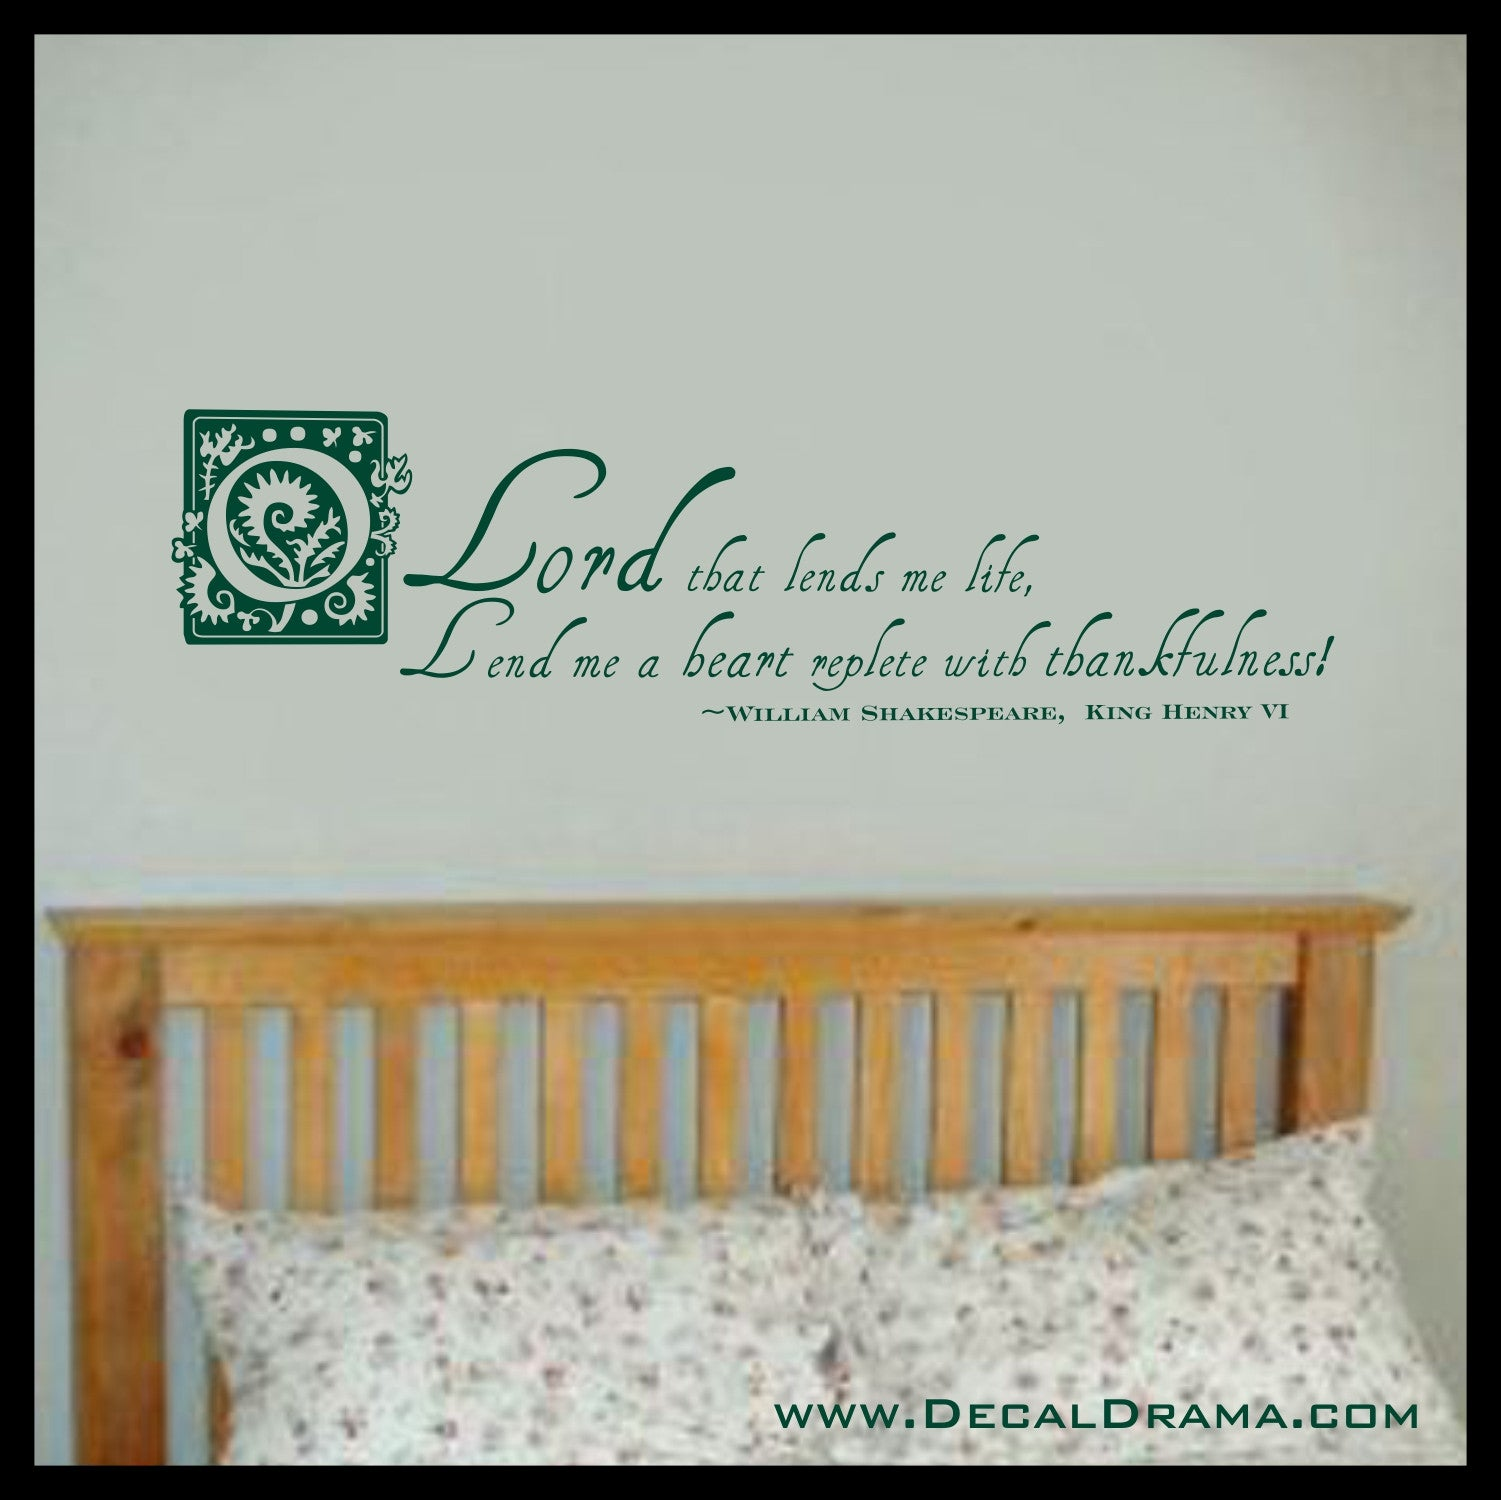 O Lord that Lends Me Life Lend Me a Heart Replete Thankfulness, Shakespeare Vinyl Wall Decal